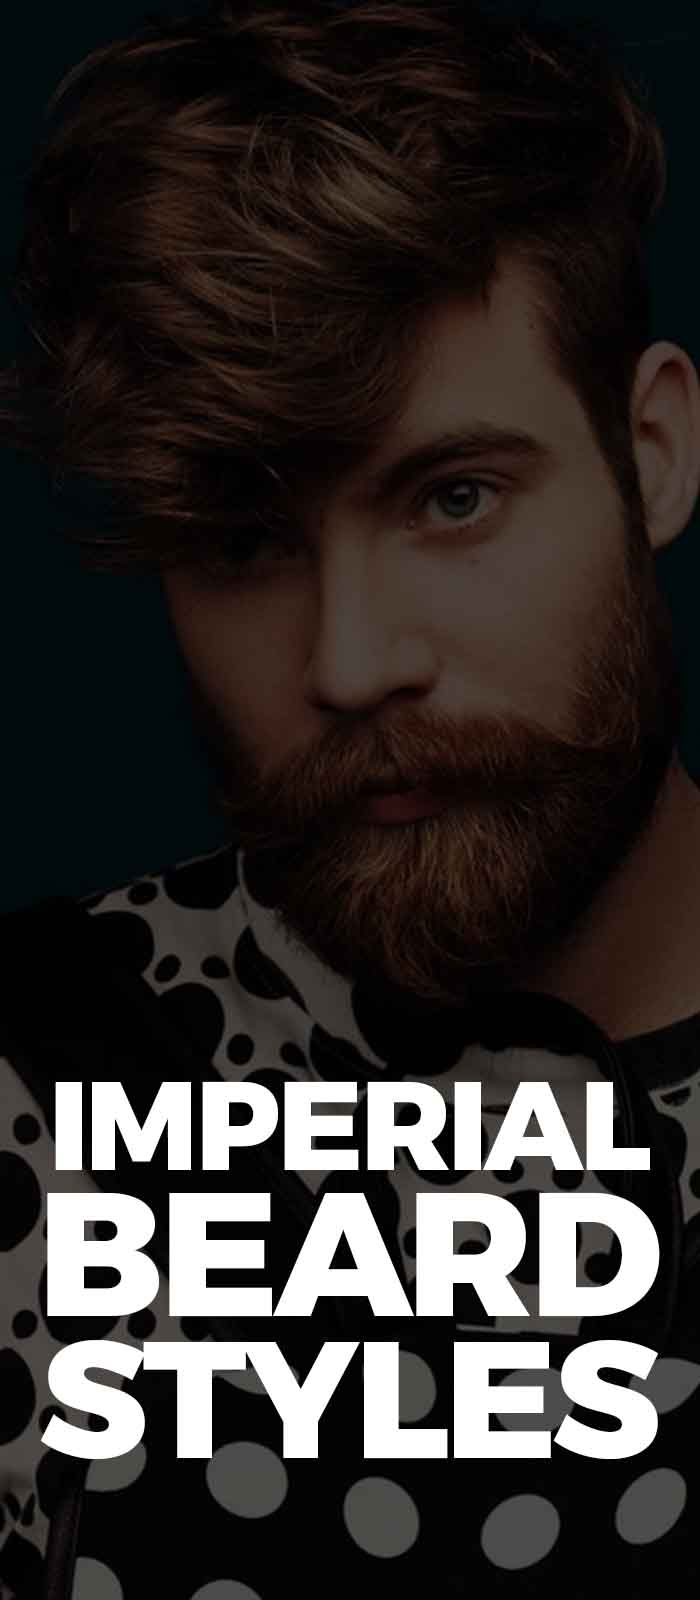 Imperial beard style!